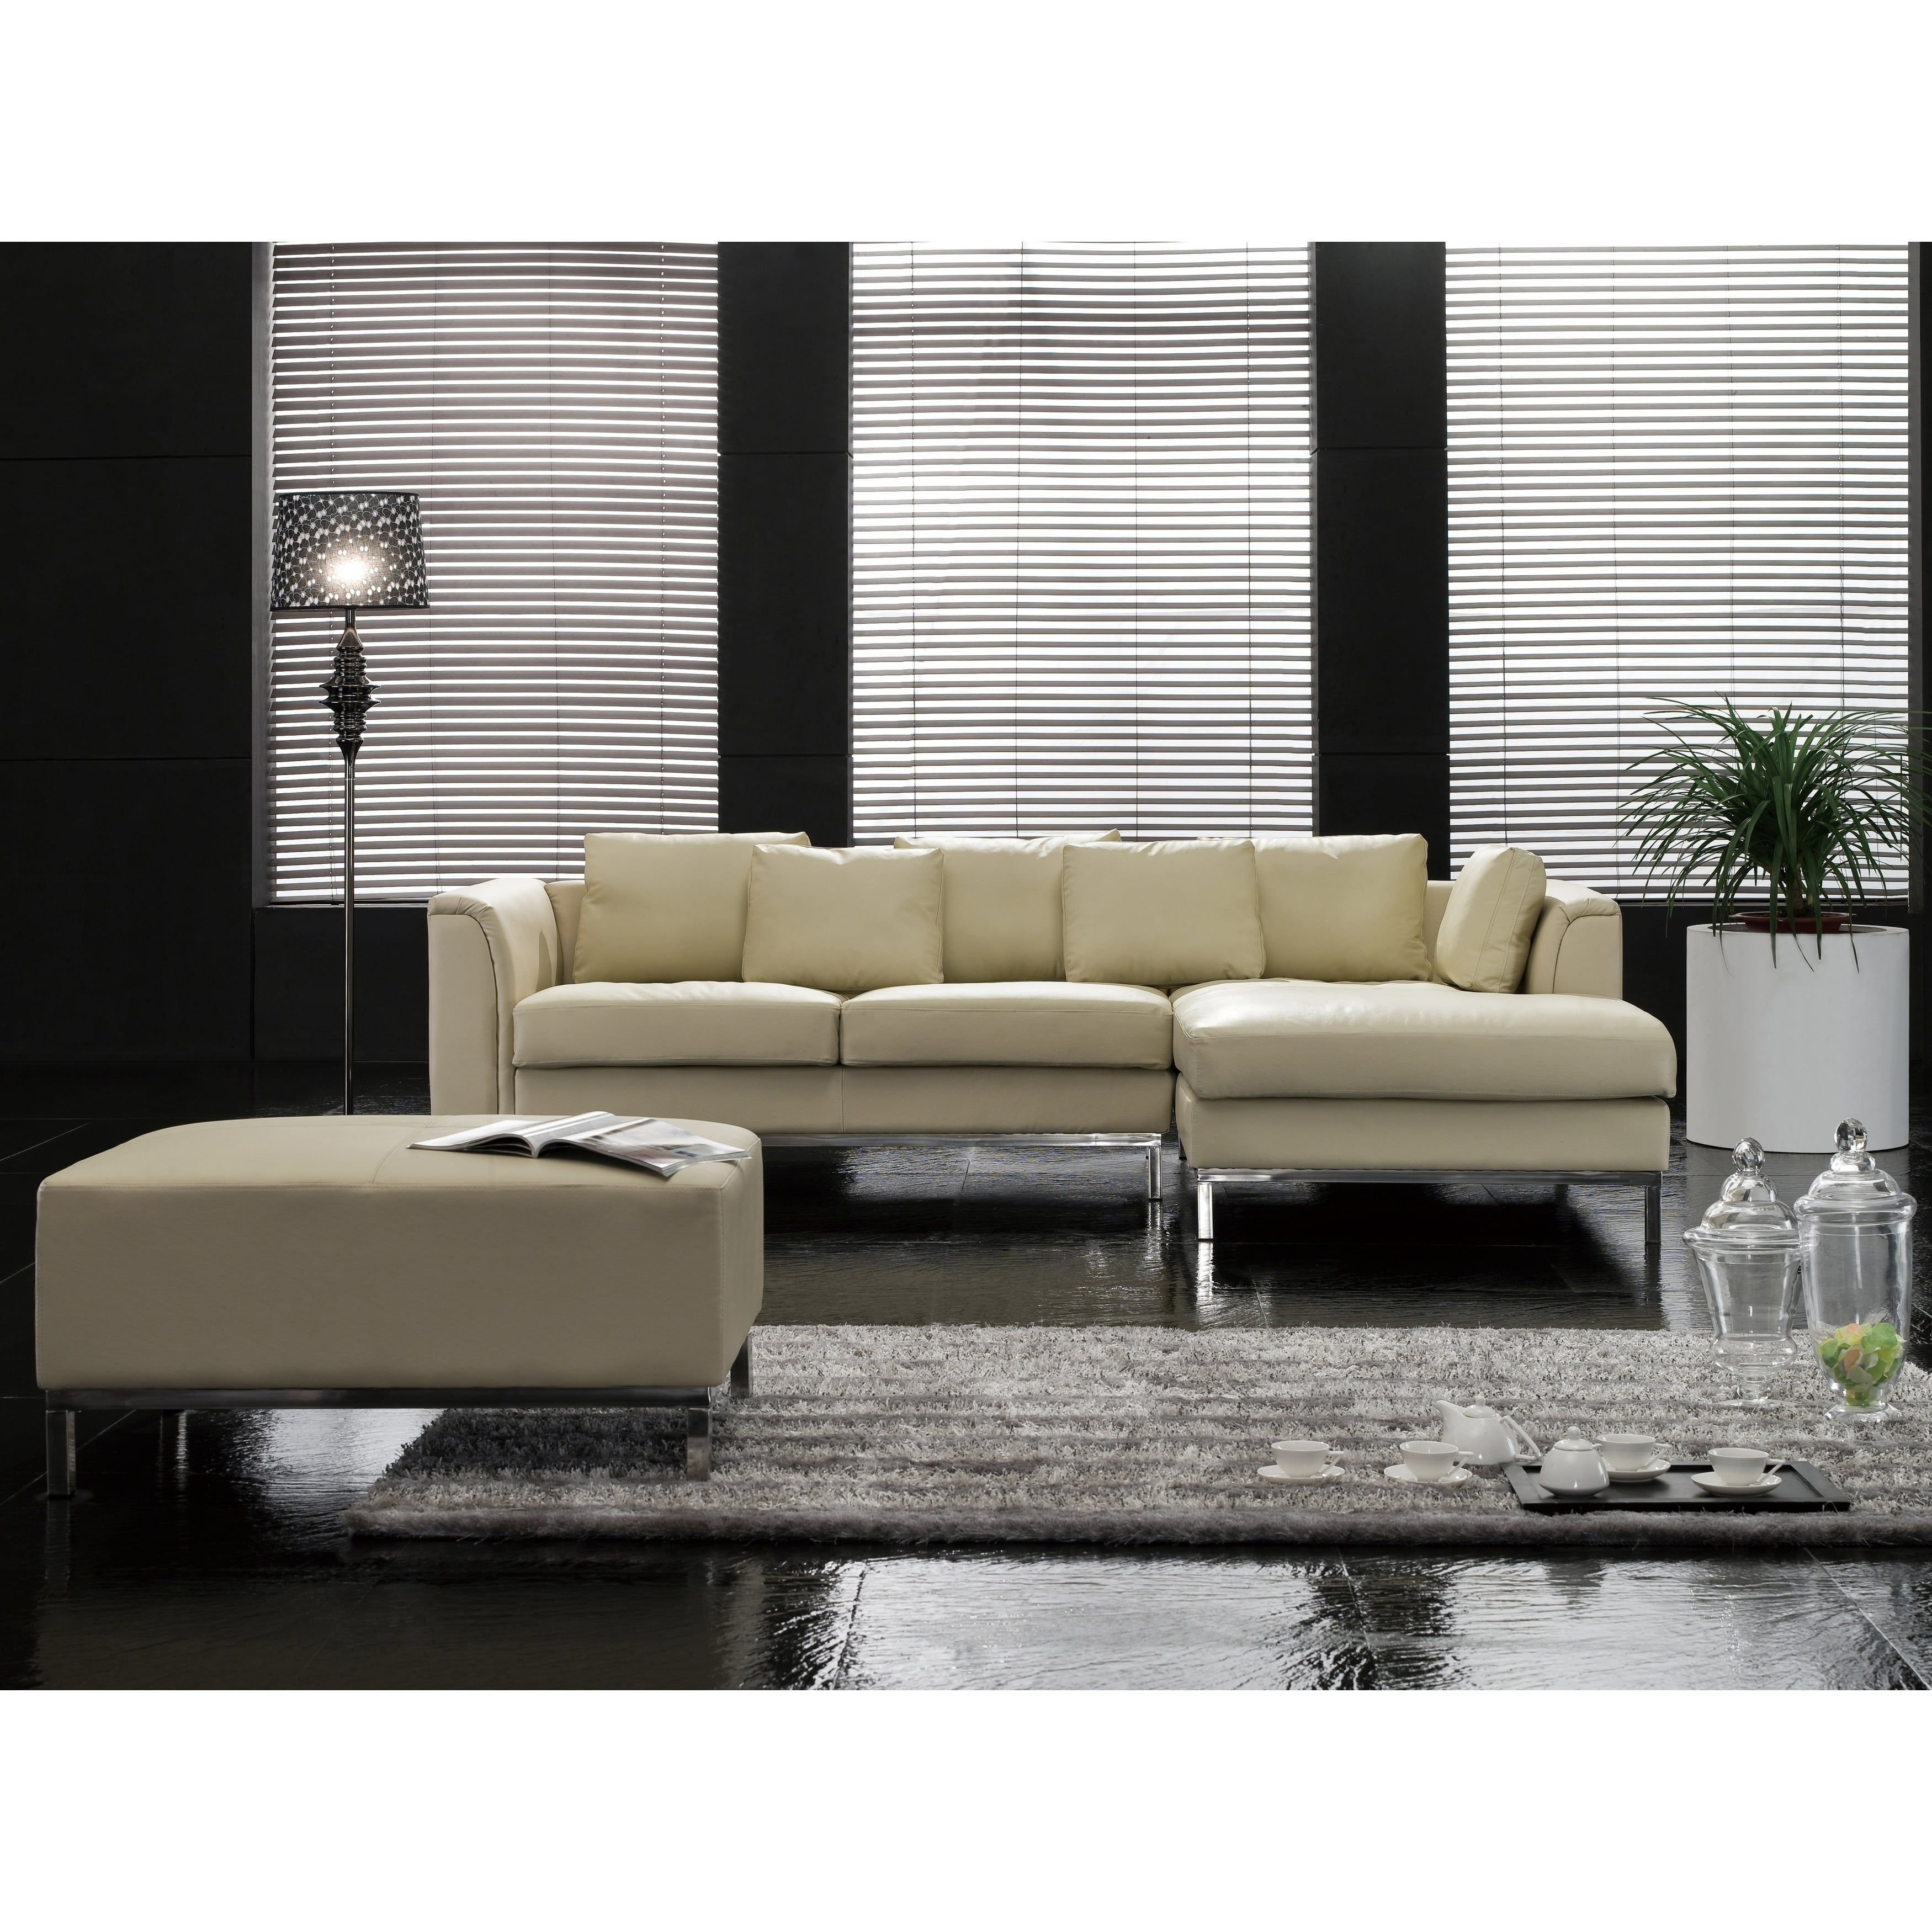 Prime Sectional Sofa With Ottoman L Beige Leather Oslo Ibusinesslaw Wood Chair Design Ideas Ibusinesslaworg